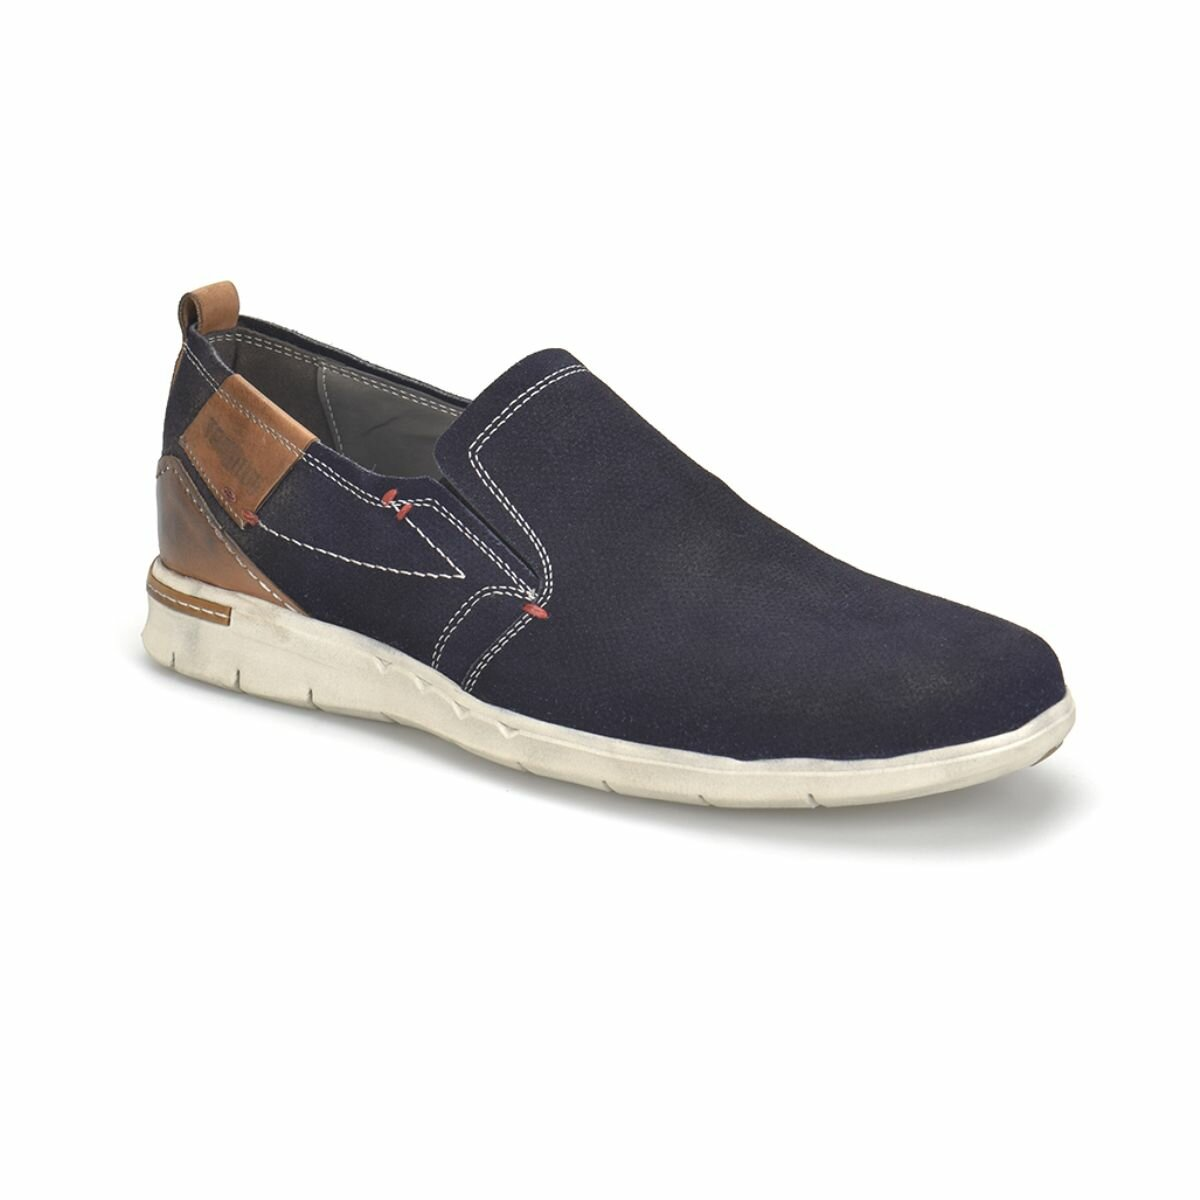 FLO 322 M 1492 Navy Blue Men 'S Modern Shoes Flogart